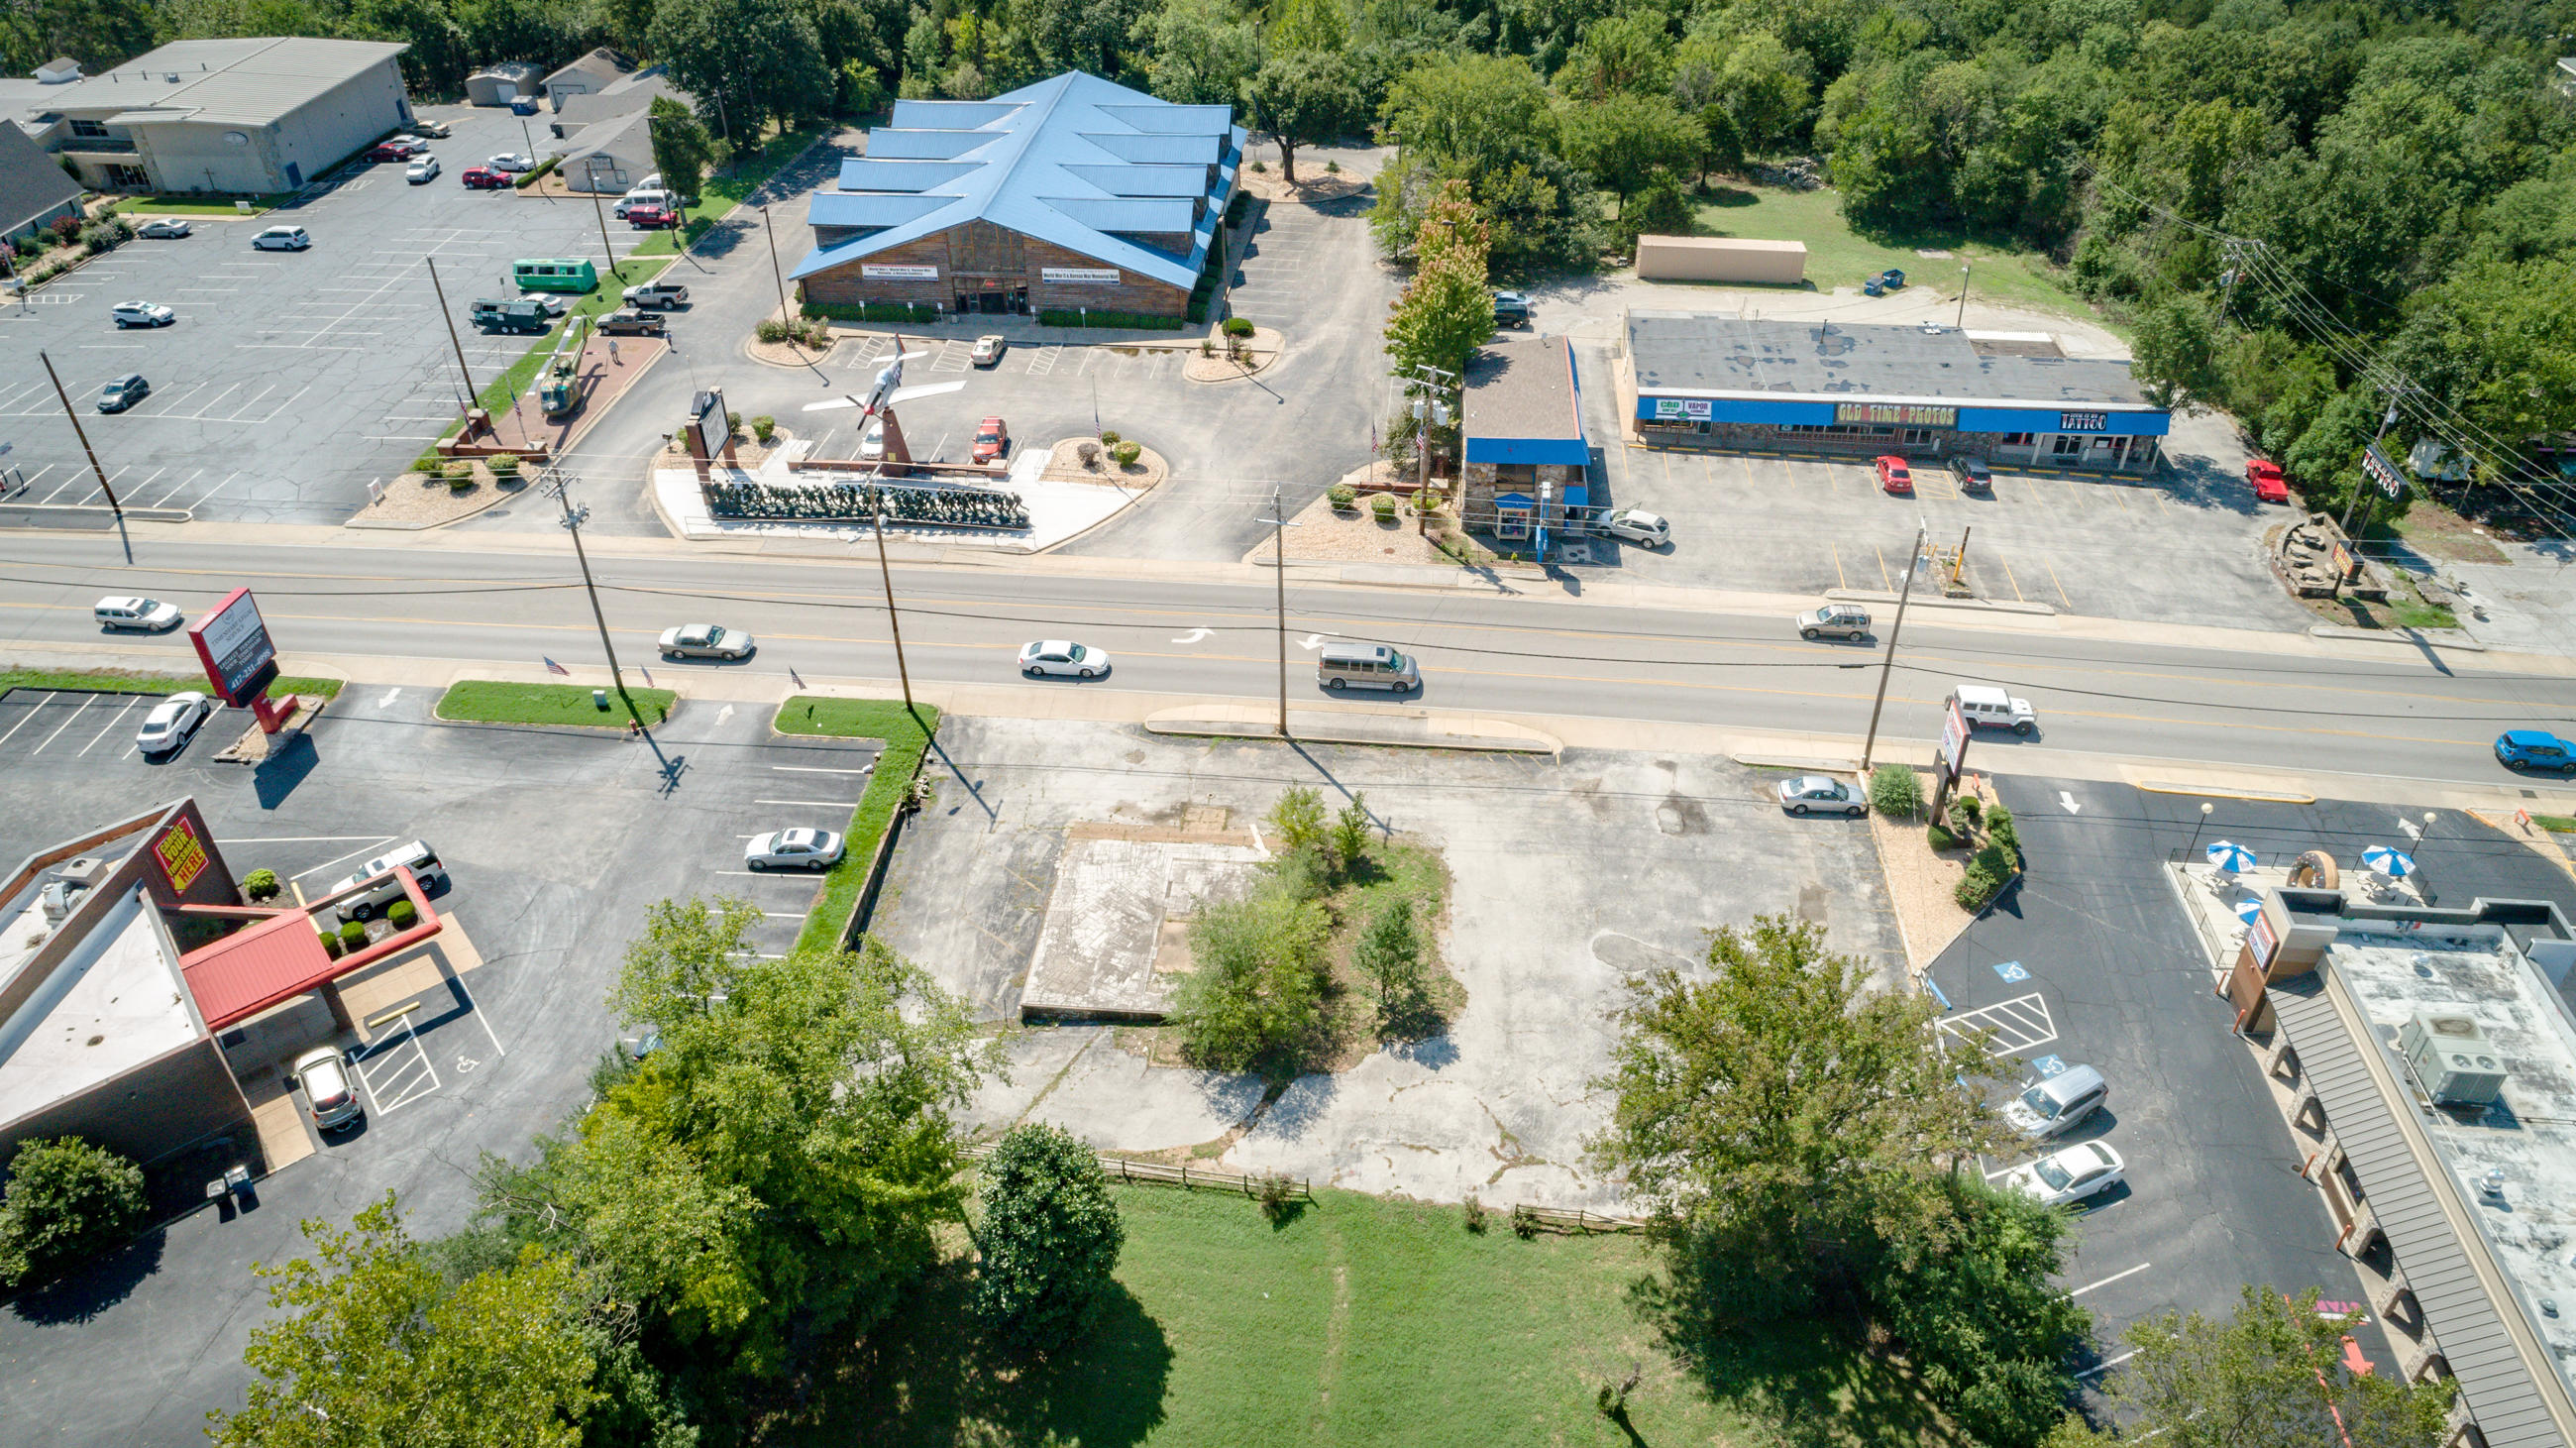 1211 State Hwy Branson, MO 65616